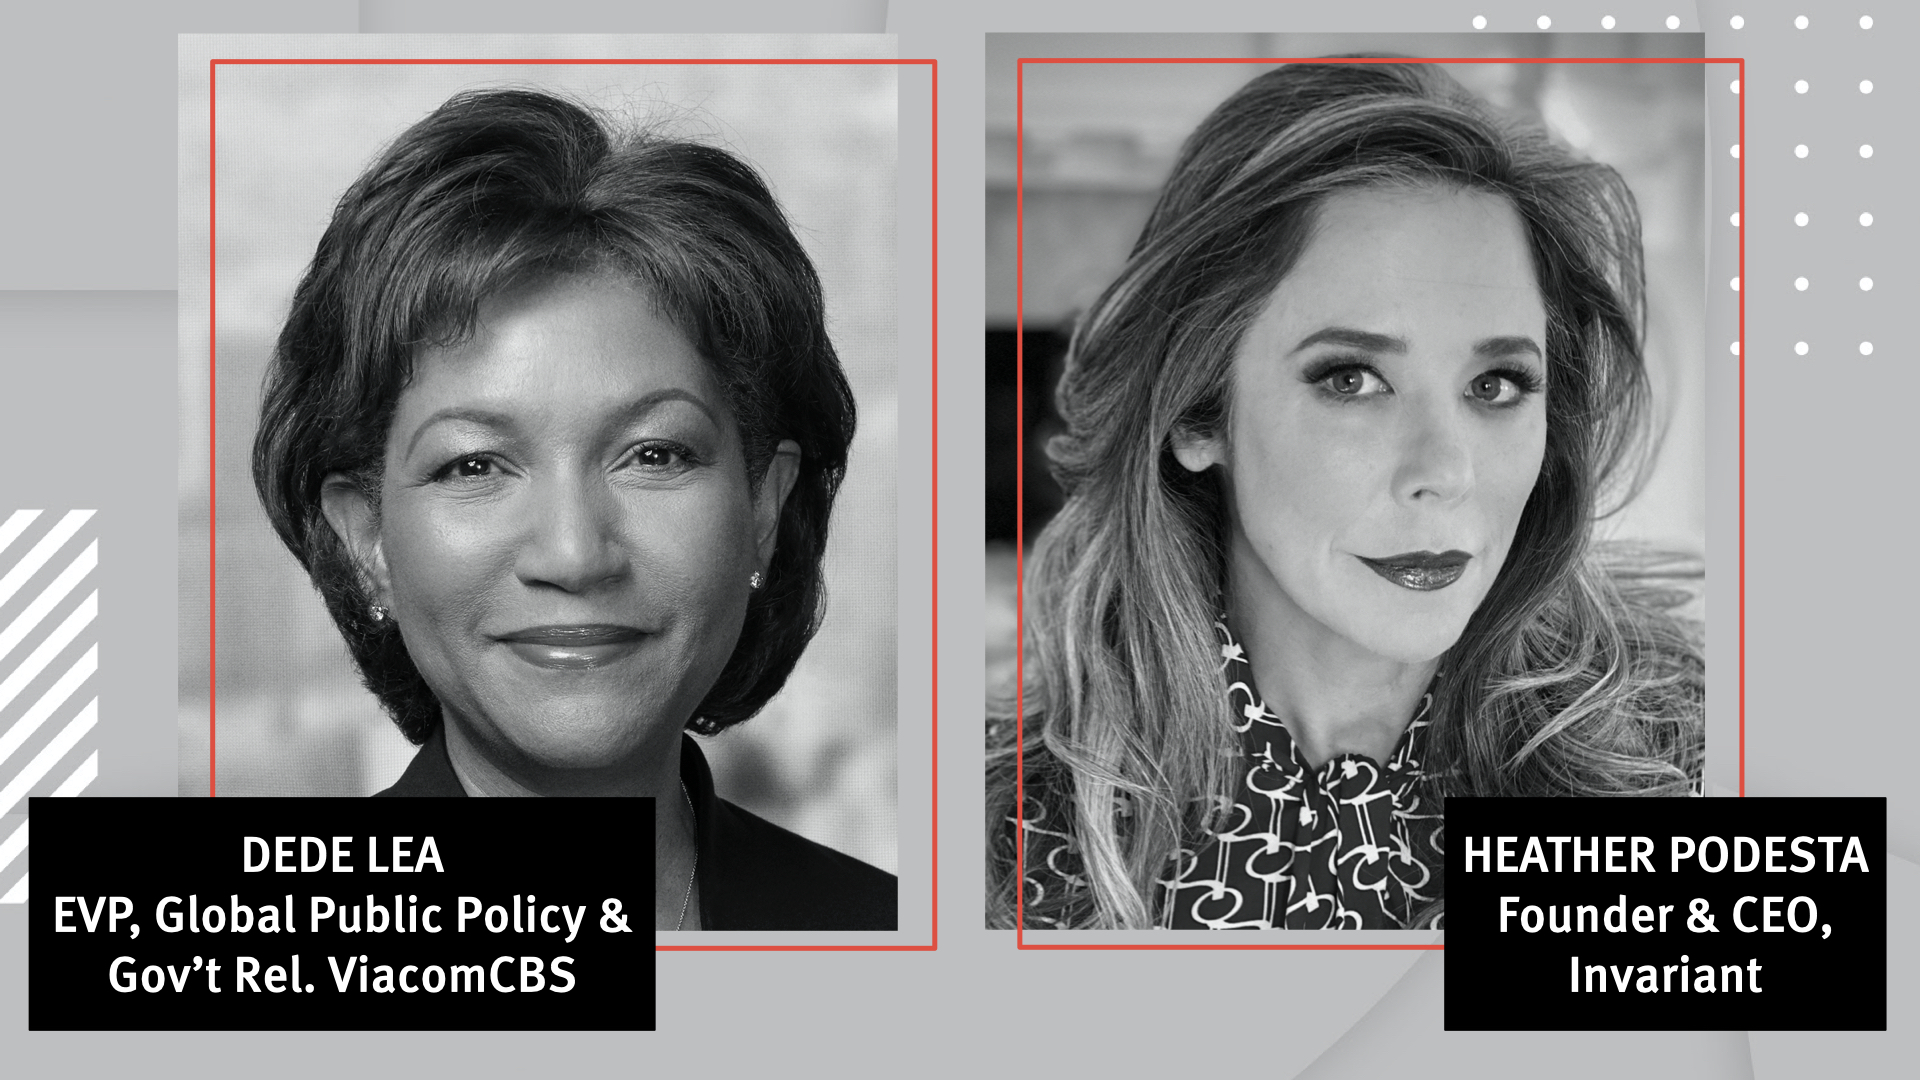 WTF 2020 - ViacomCBS' EVP of Global Public Policy & Government Relations DeDe Lea and Invariant founder & CEO Heather Podesta in conversation with Jessica Toonkel, reporter at The Information